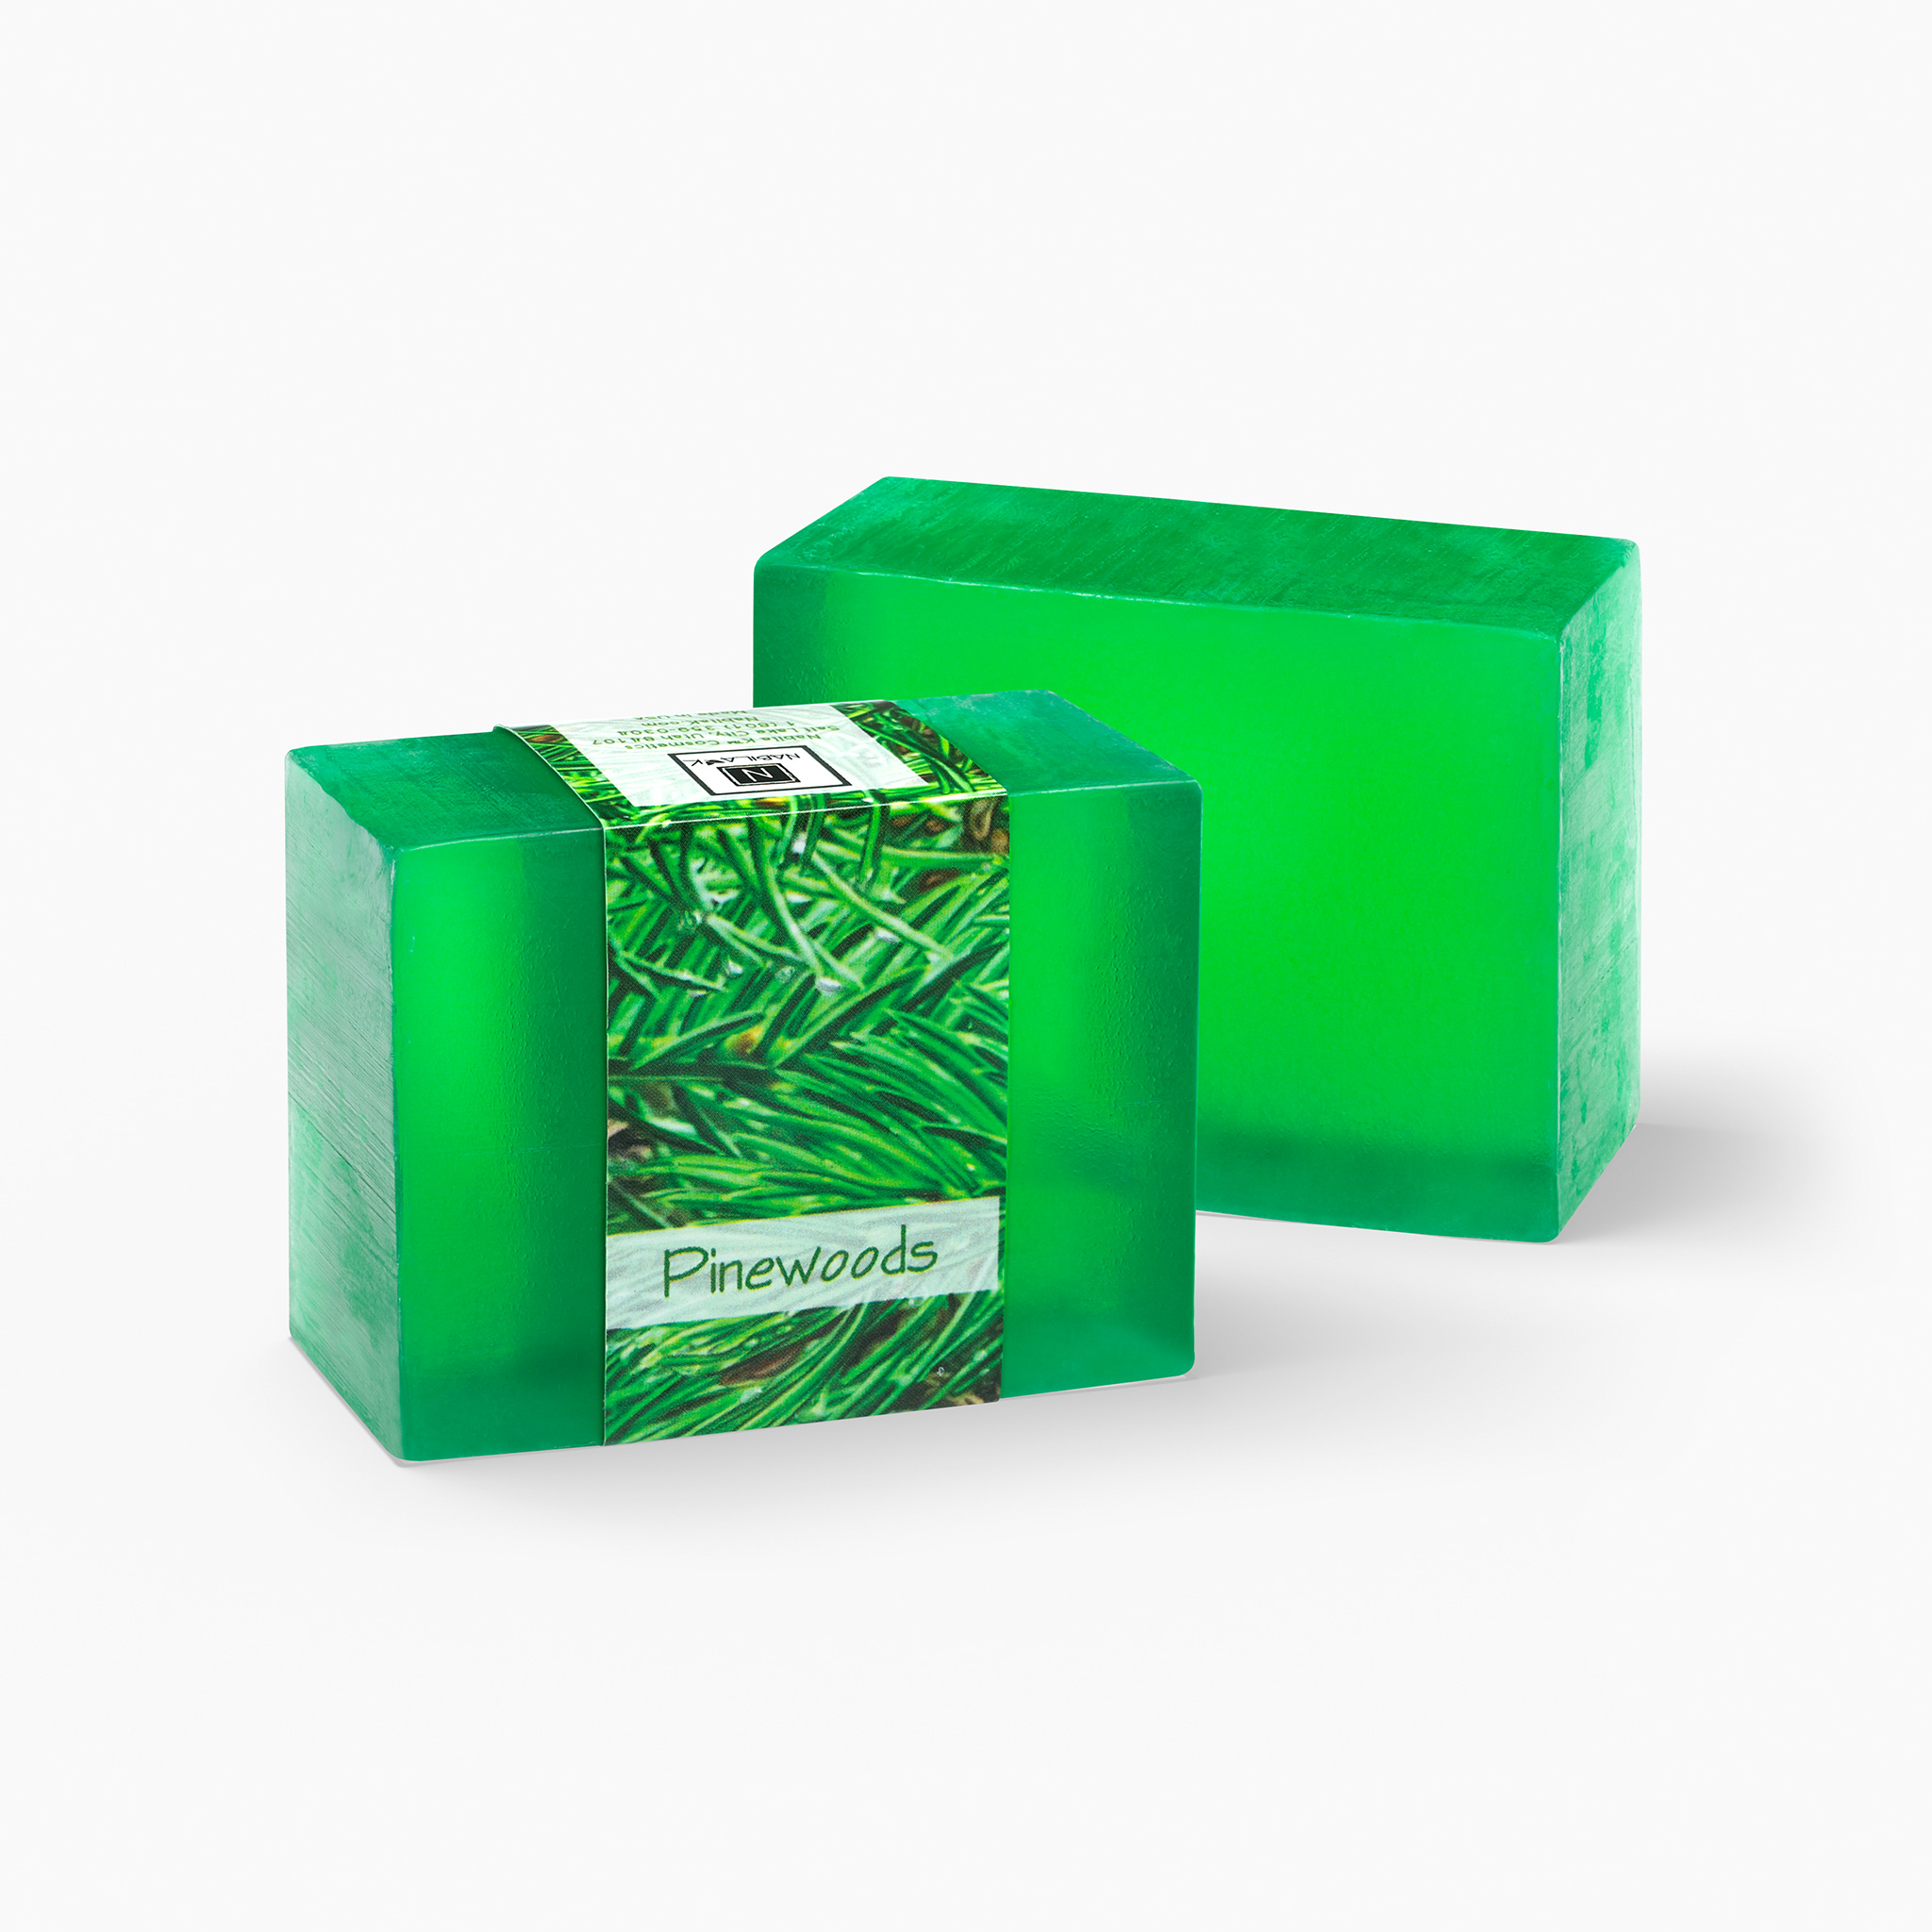 Take a hike through the pines with this pine infused Pinewoods glycerin soap. A great scent for the holiday season.